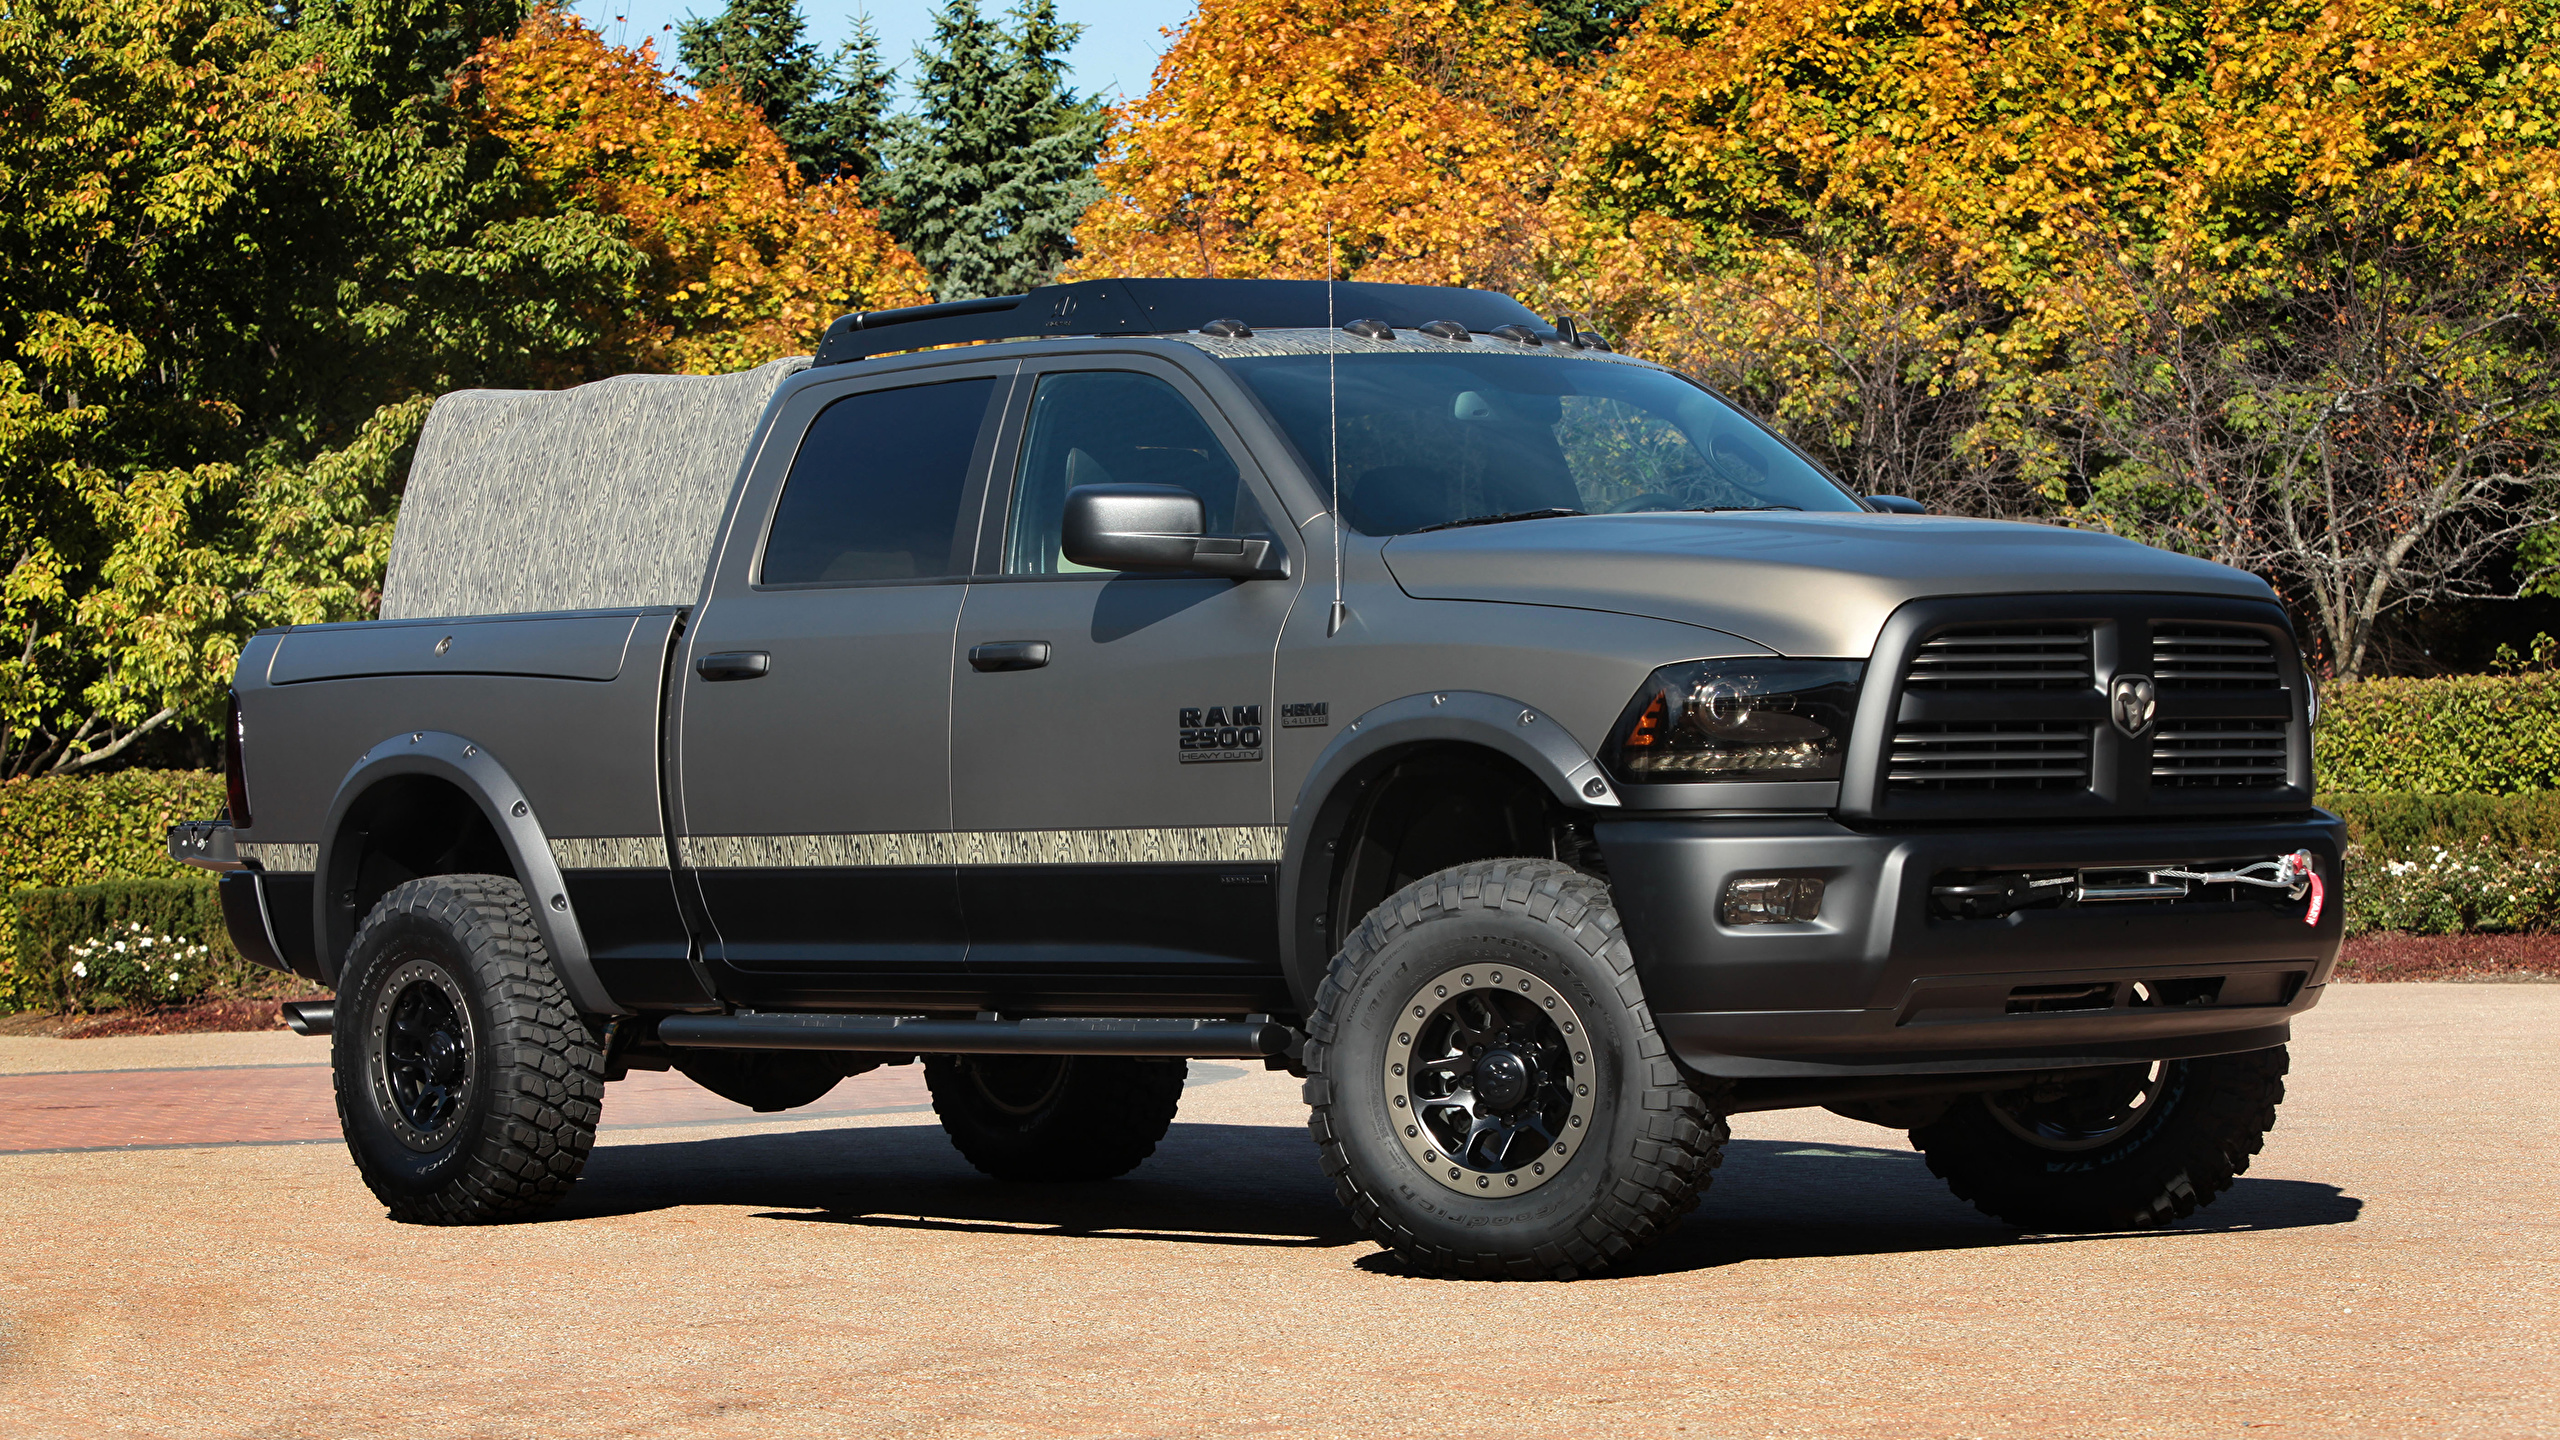 Picture Dodge Tuning 2014 Ram 2500 Outdoorsman Gray 2560x1440